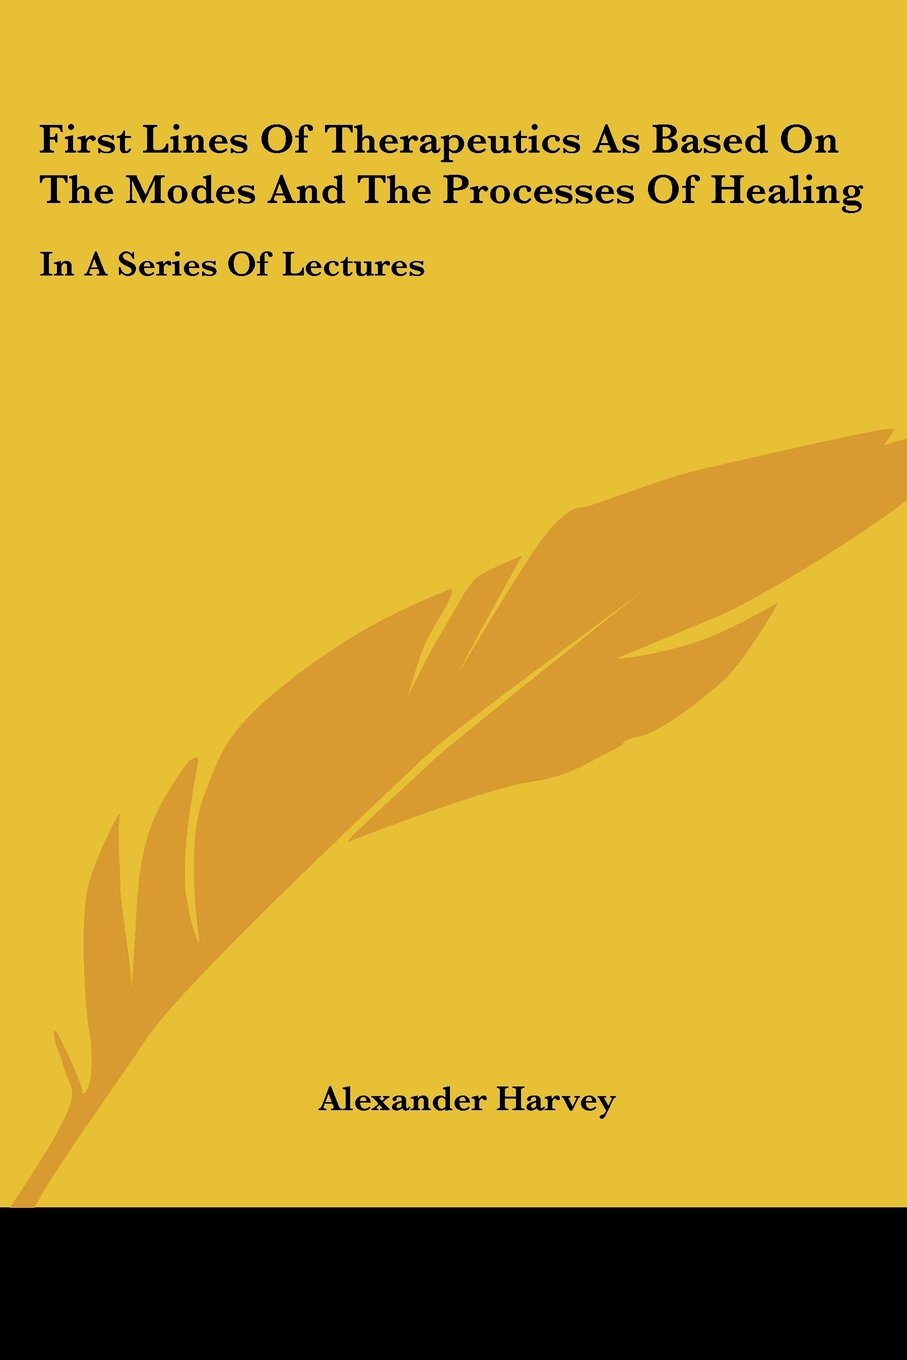 Read Online First Lines Of Therapeutics As Based On The Modes And The Processes Of Healing: In A Series Of Lectures PDF